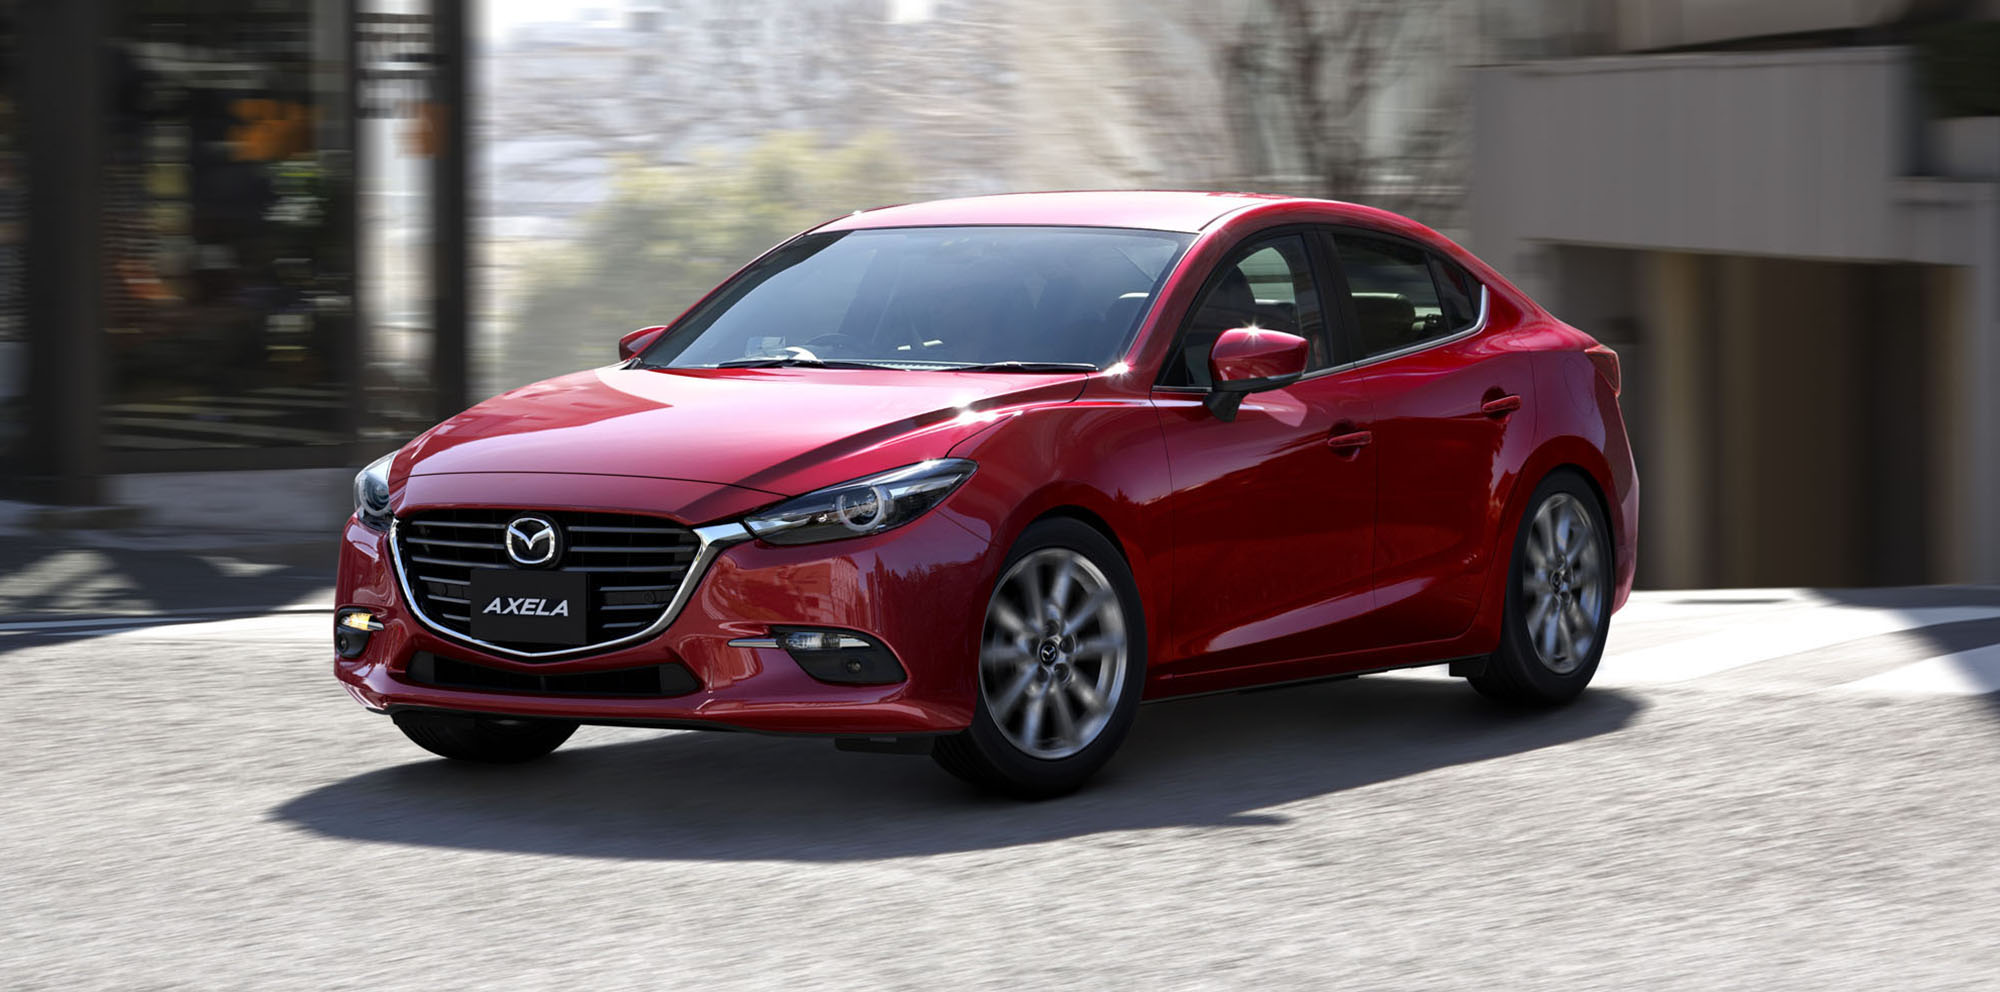 2016 mazda 3 facelift goes official australian debut coming soon photos 1 of 20. Black Bedroom Furniture Sets. Home Design Ideas